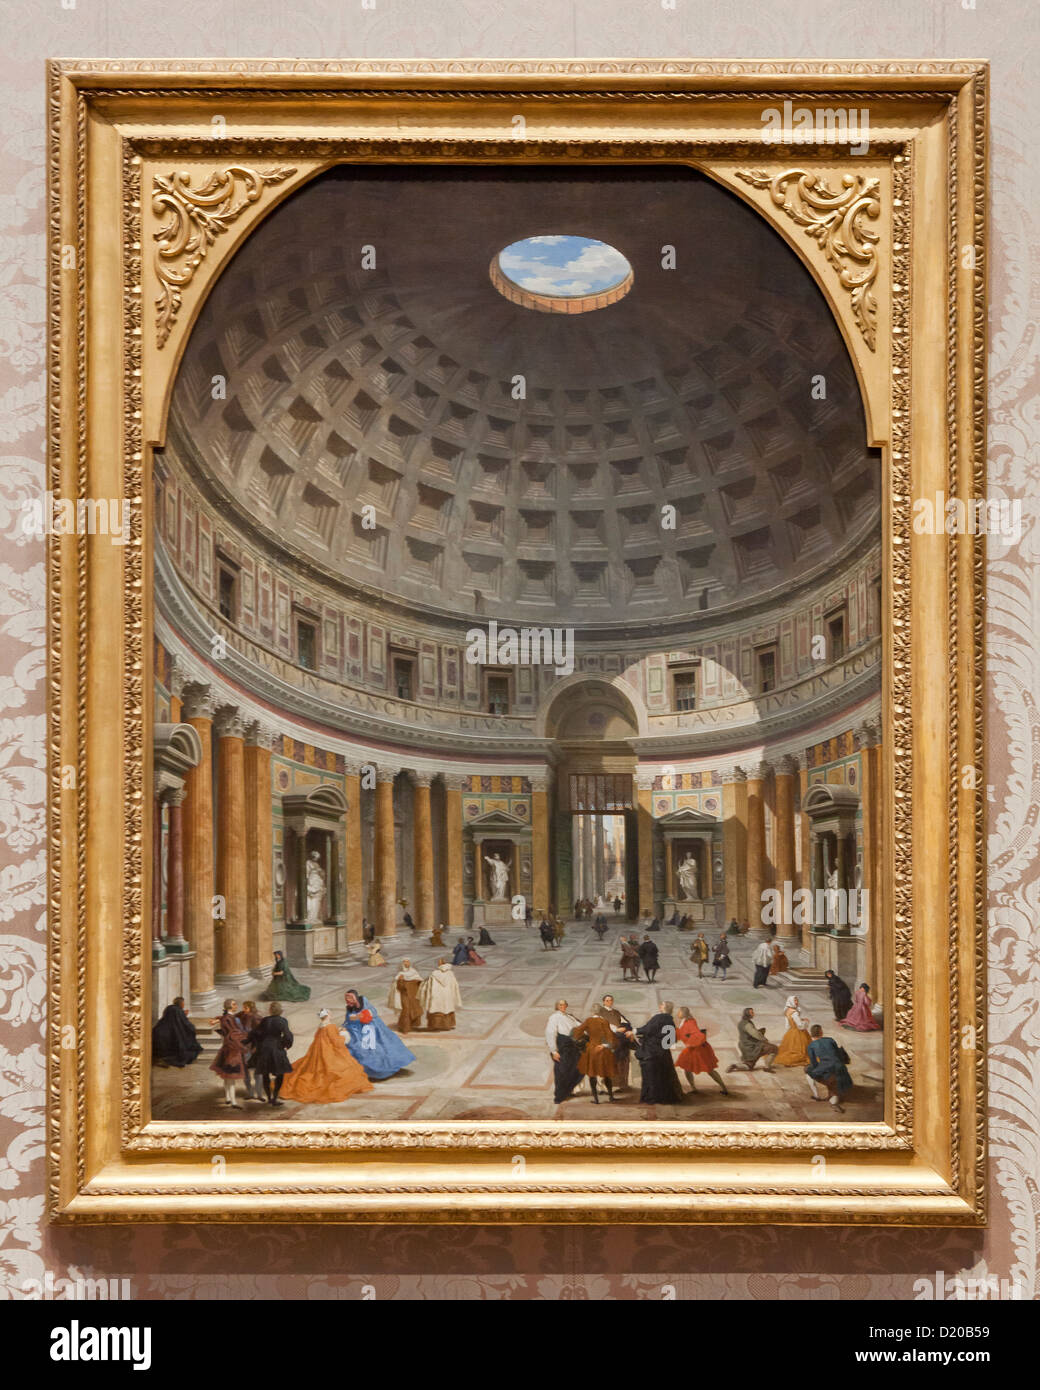 """Interior of the Pantheon, Rome"" by Giovanni Paolo Panini, 1735"